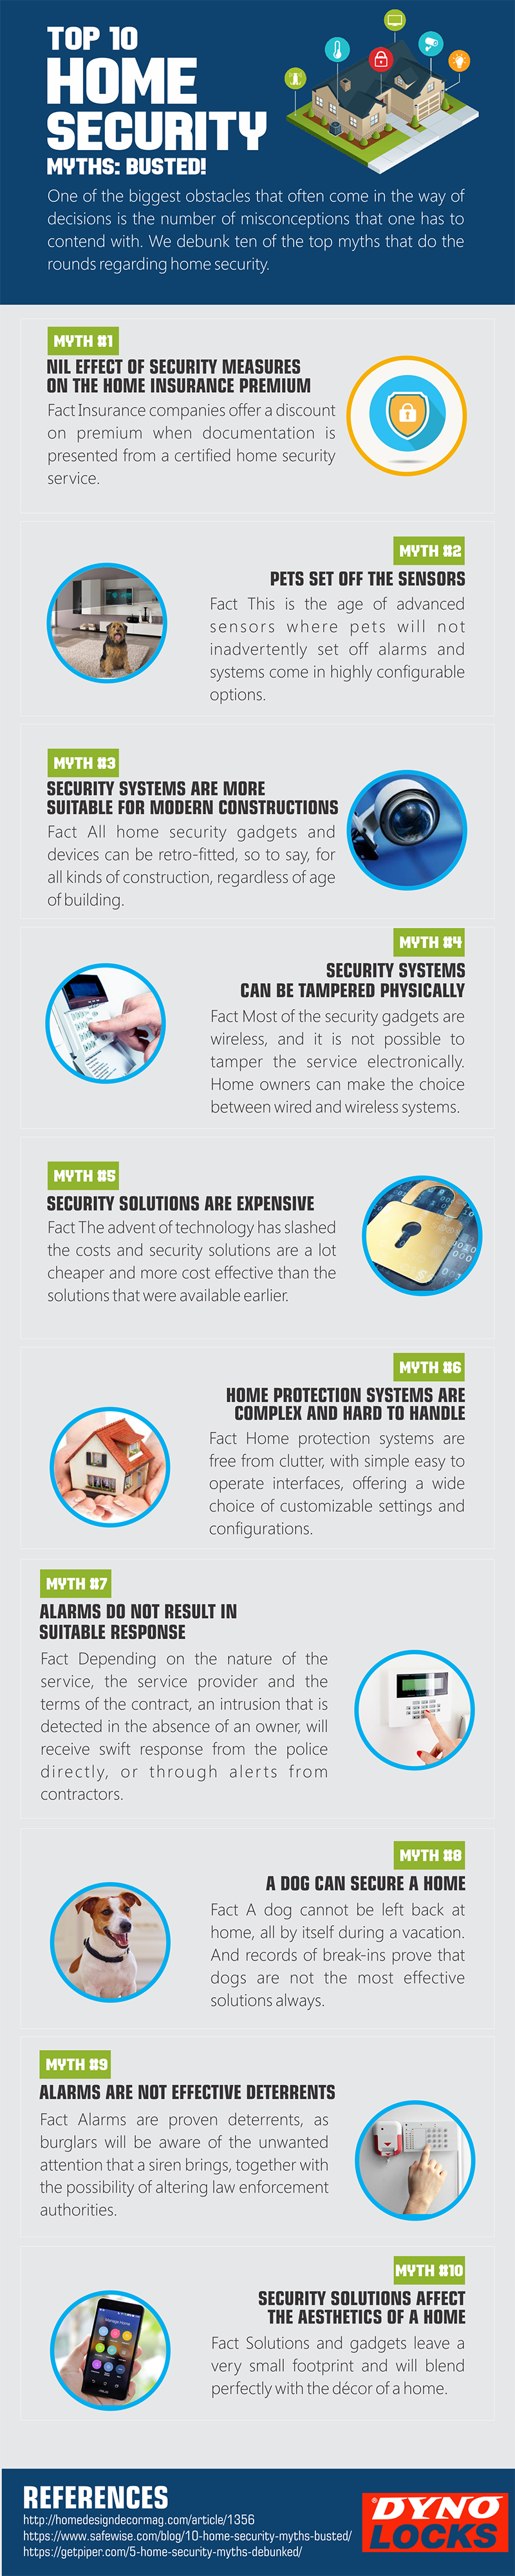 Top-10-Home-Security-Myths-infographic